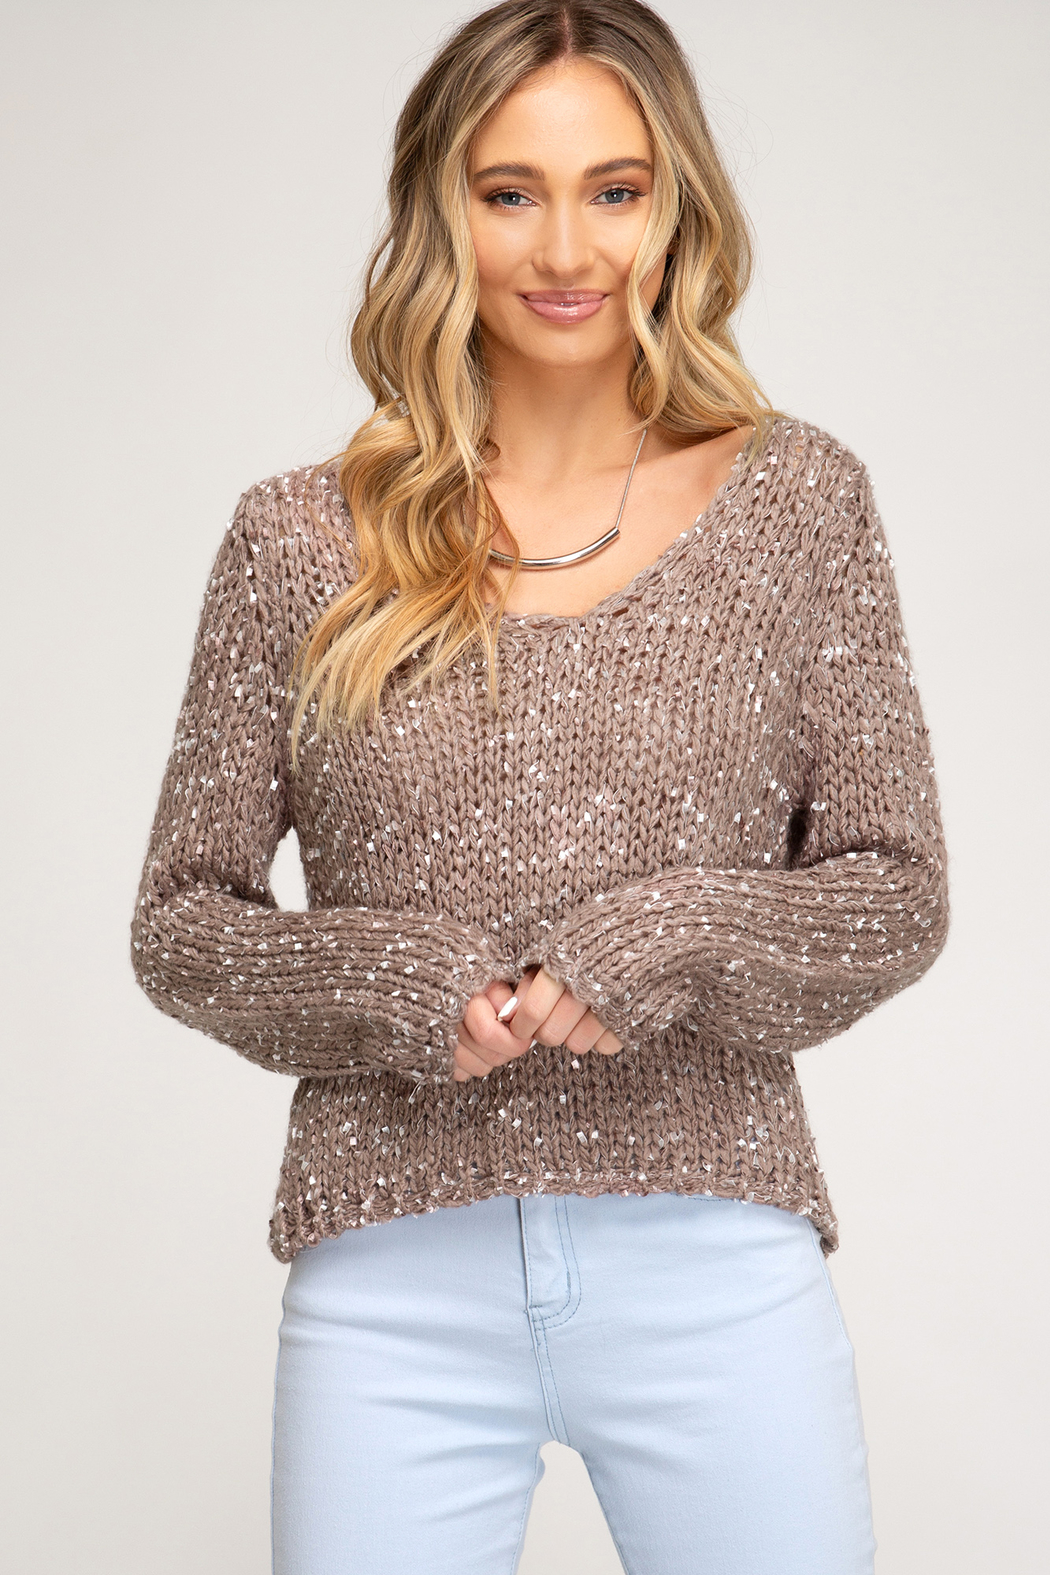 She + Sky Cropped Mix Yarn Sweater - Front Cropped Image